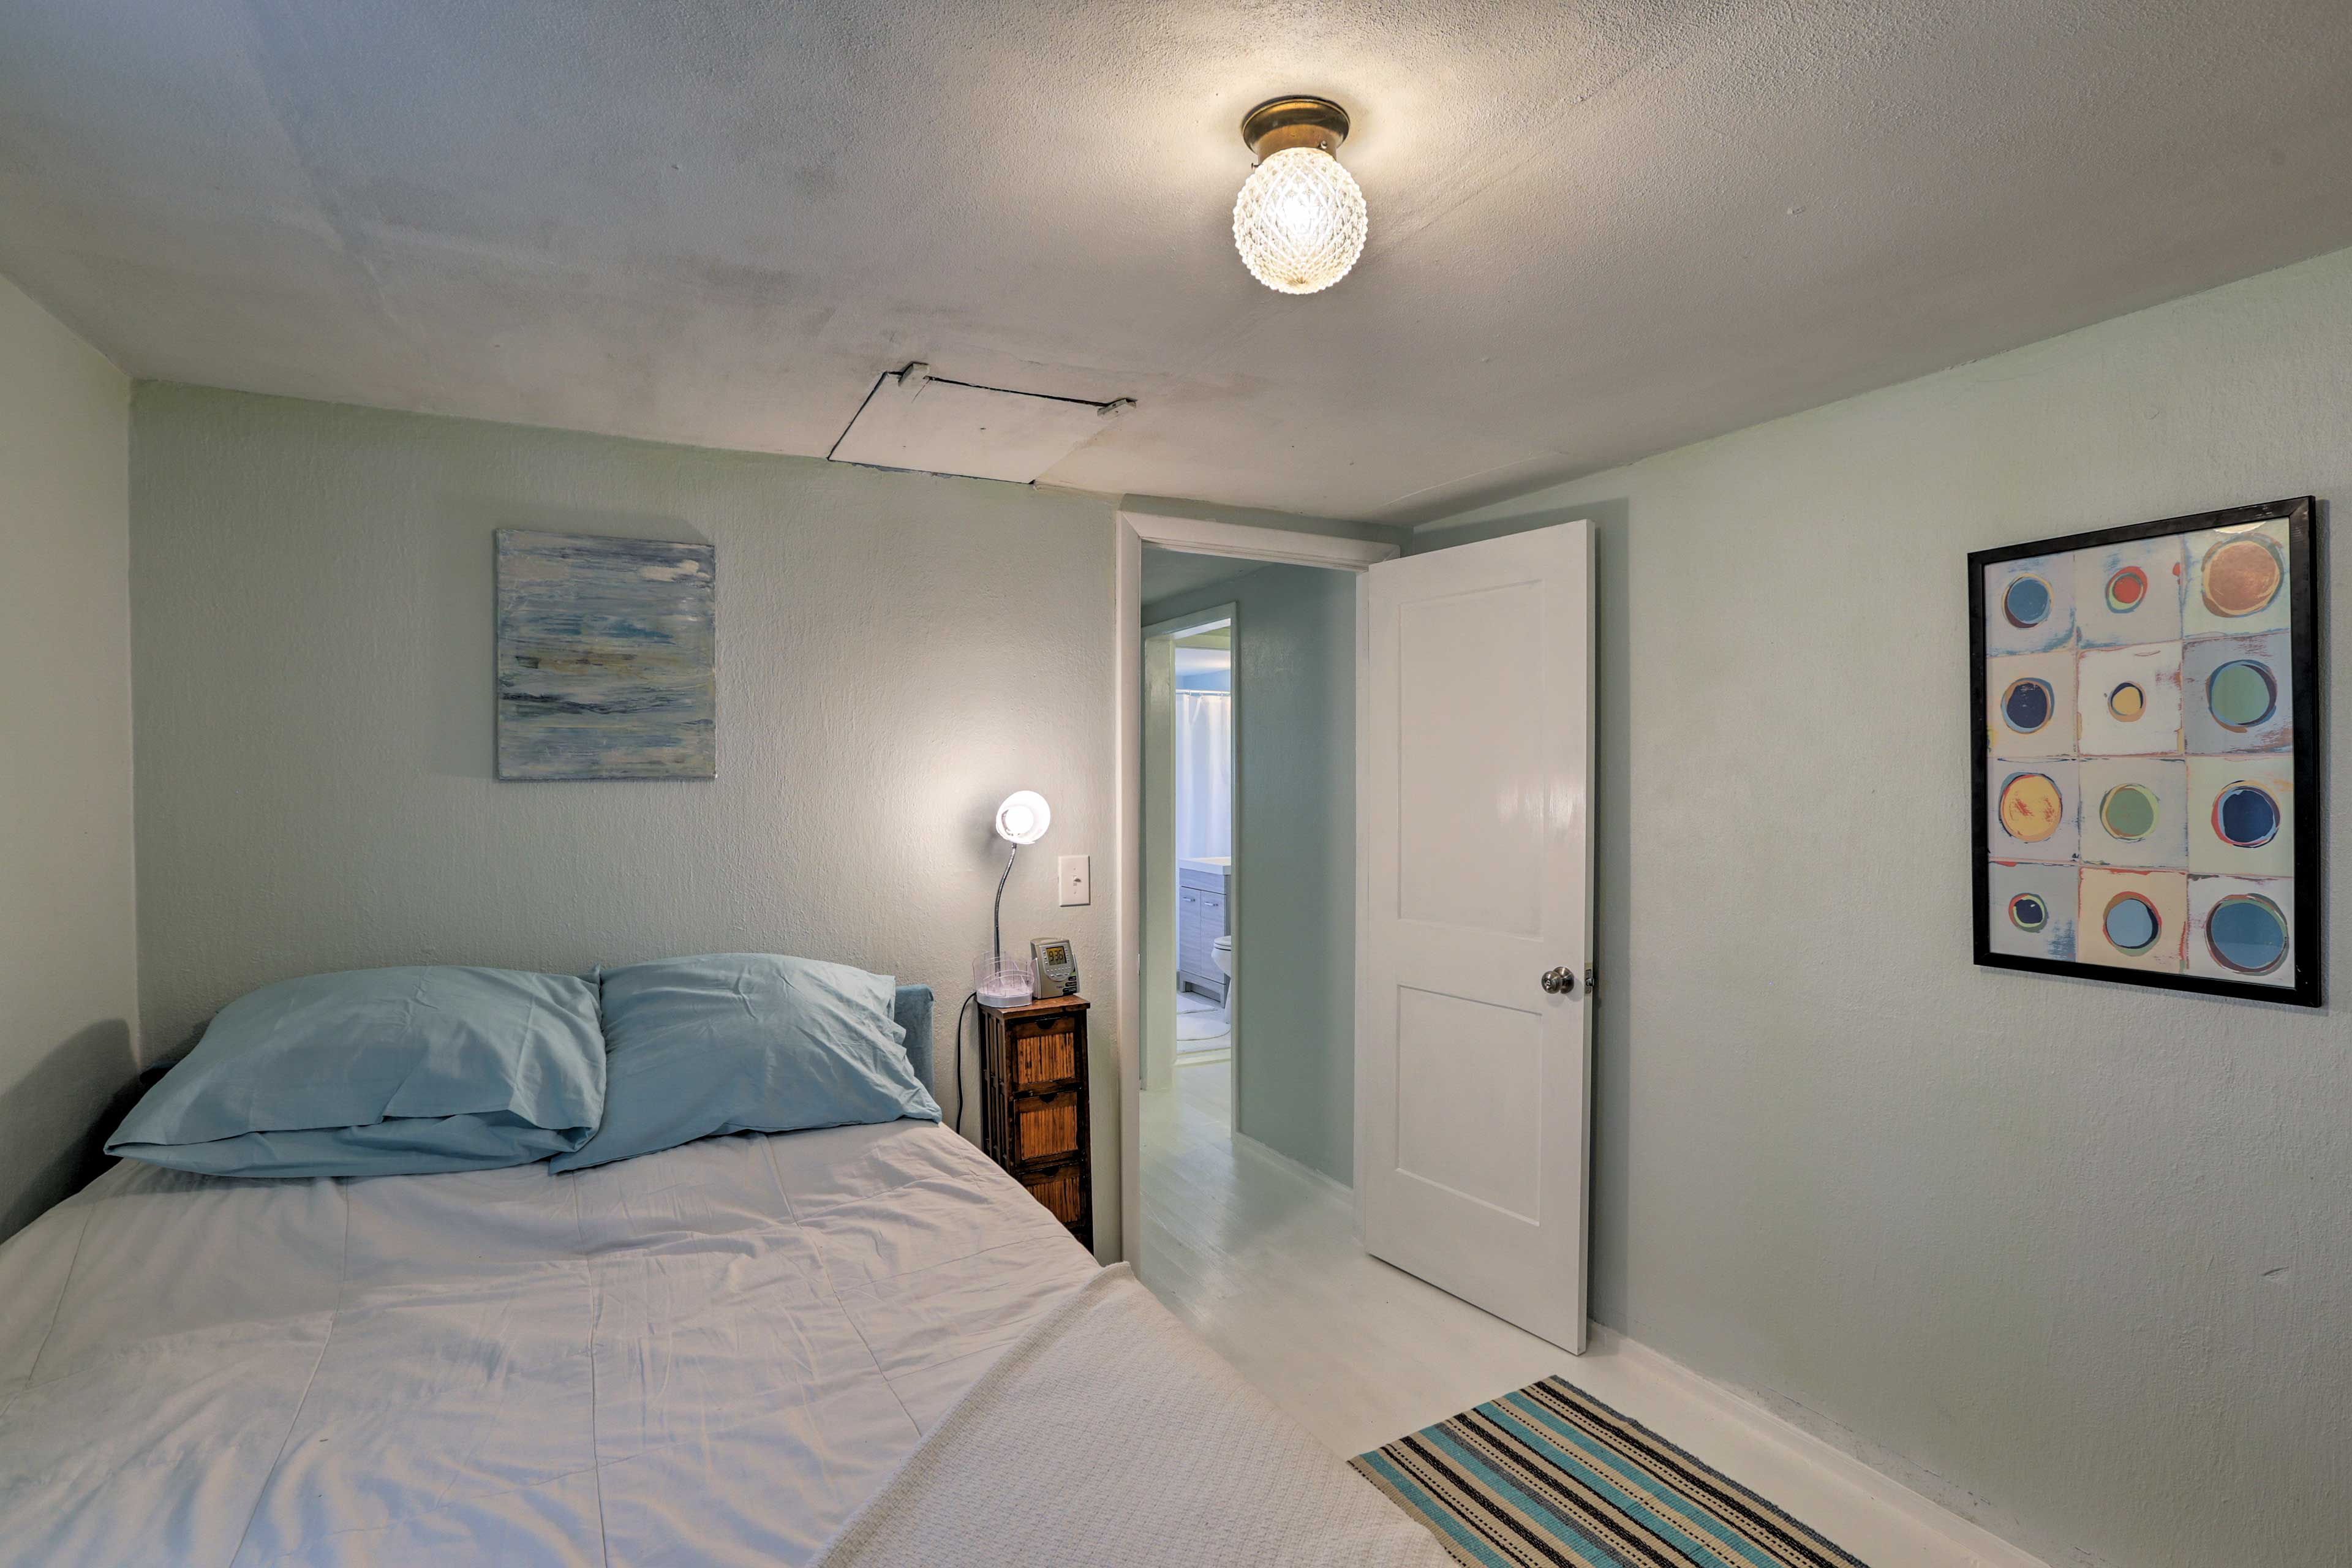 Sleep is sure to come easy on this room's full bed.